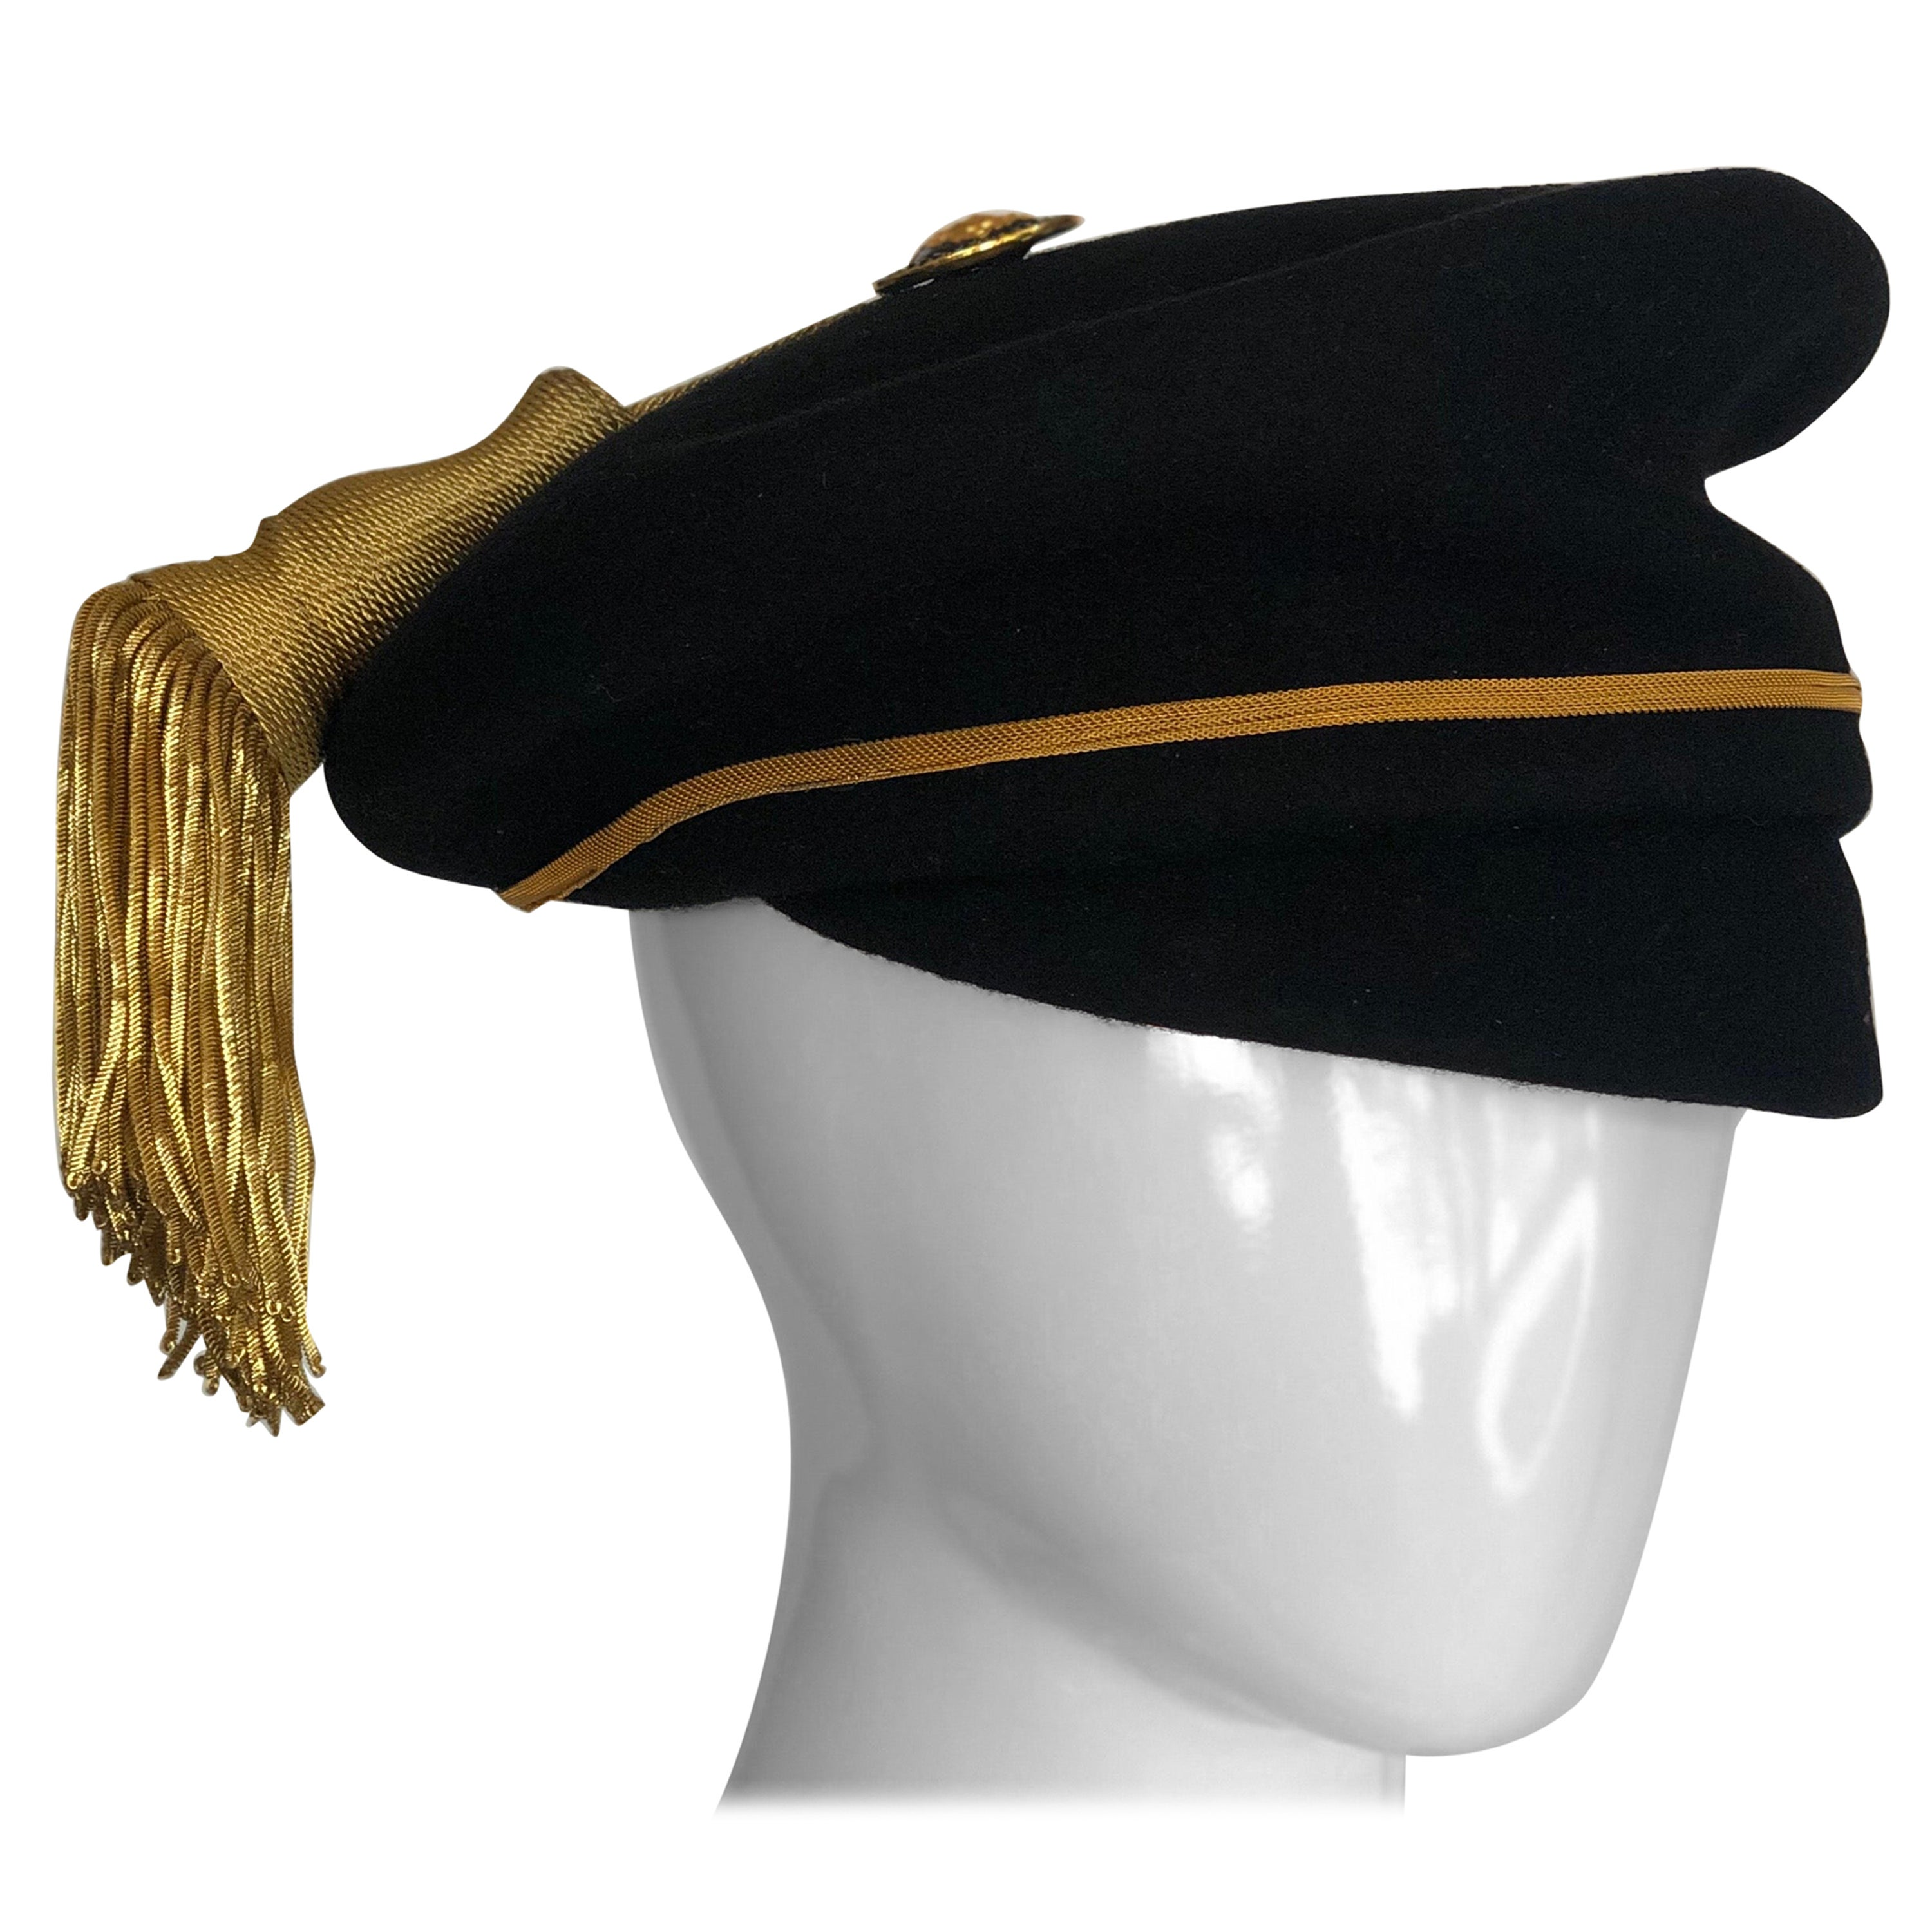 Gianni Versace Felt Hat with Gold Threaded Tassel